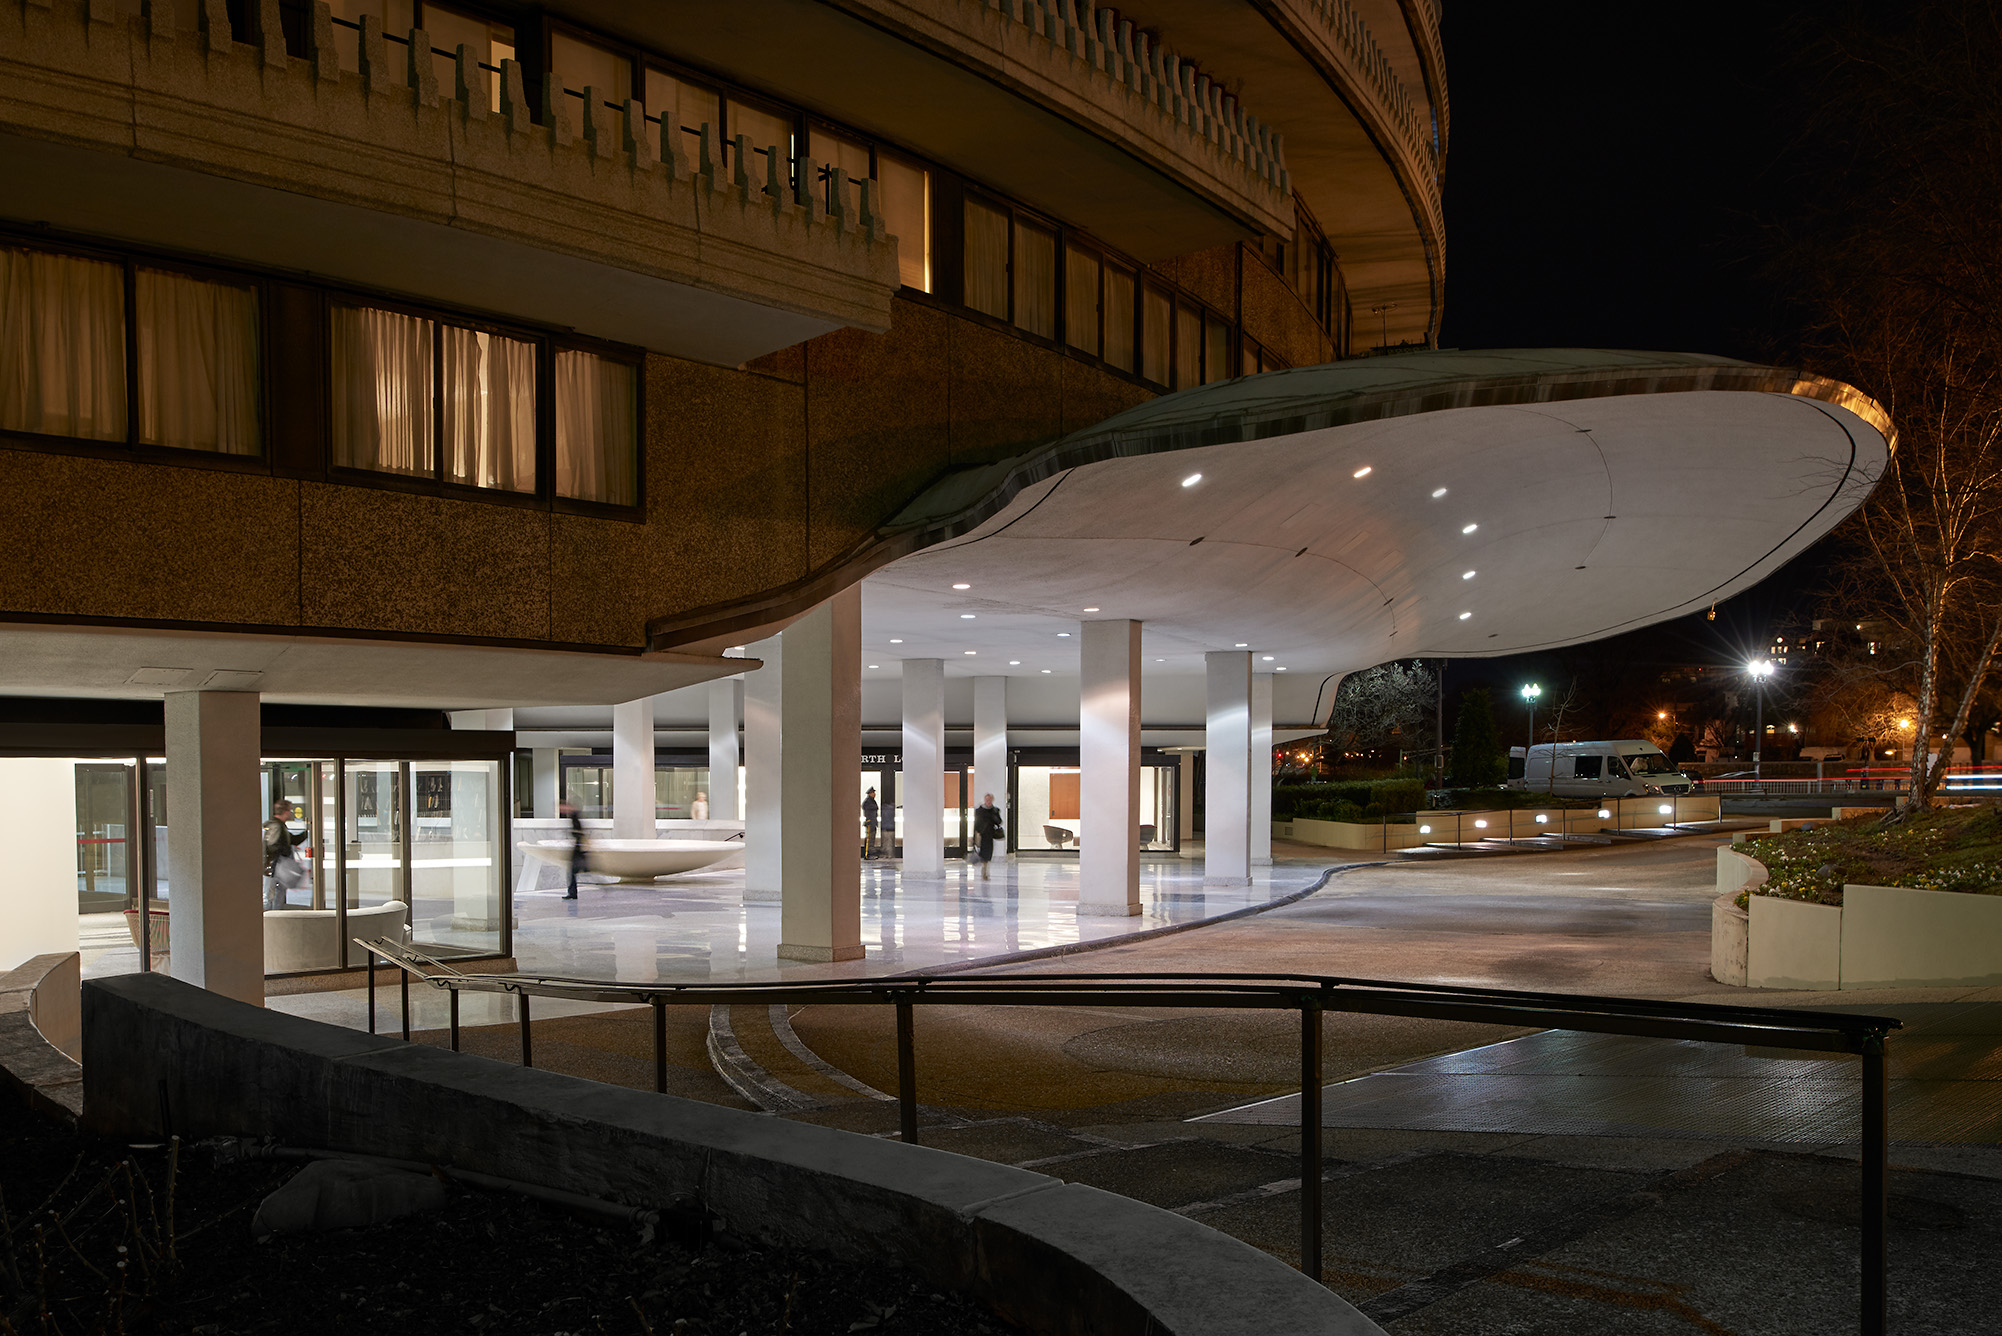 Watergate_Outdoor_night_Lobby_McInturff_Architects_8_Anice.jpg